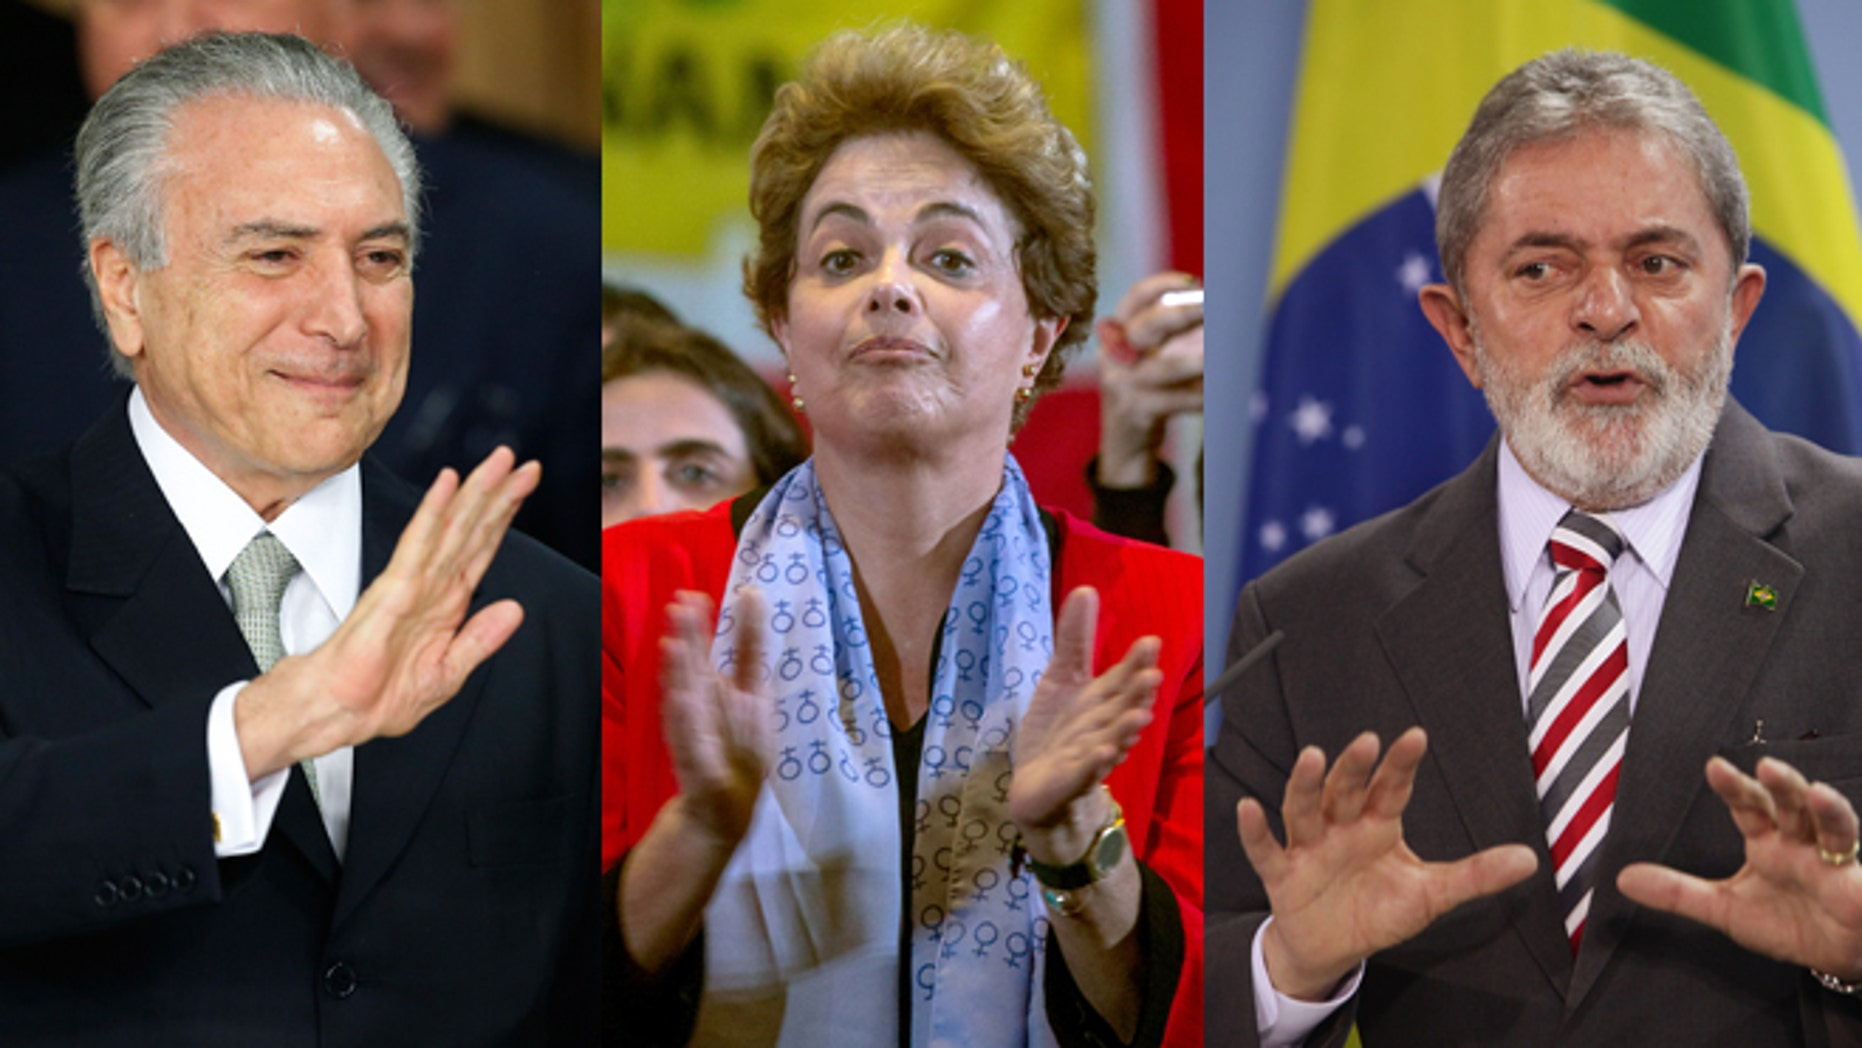 From Left: Brazil's acting President Michel Temer, elected President Dilma Rousseff and former President Luis Inacio Lula da Silva. (Photos: Getty Images)